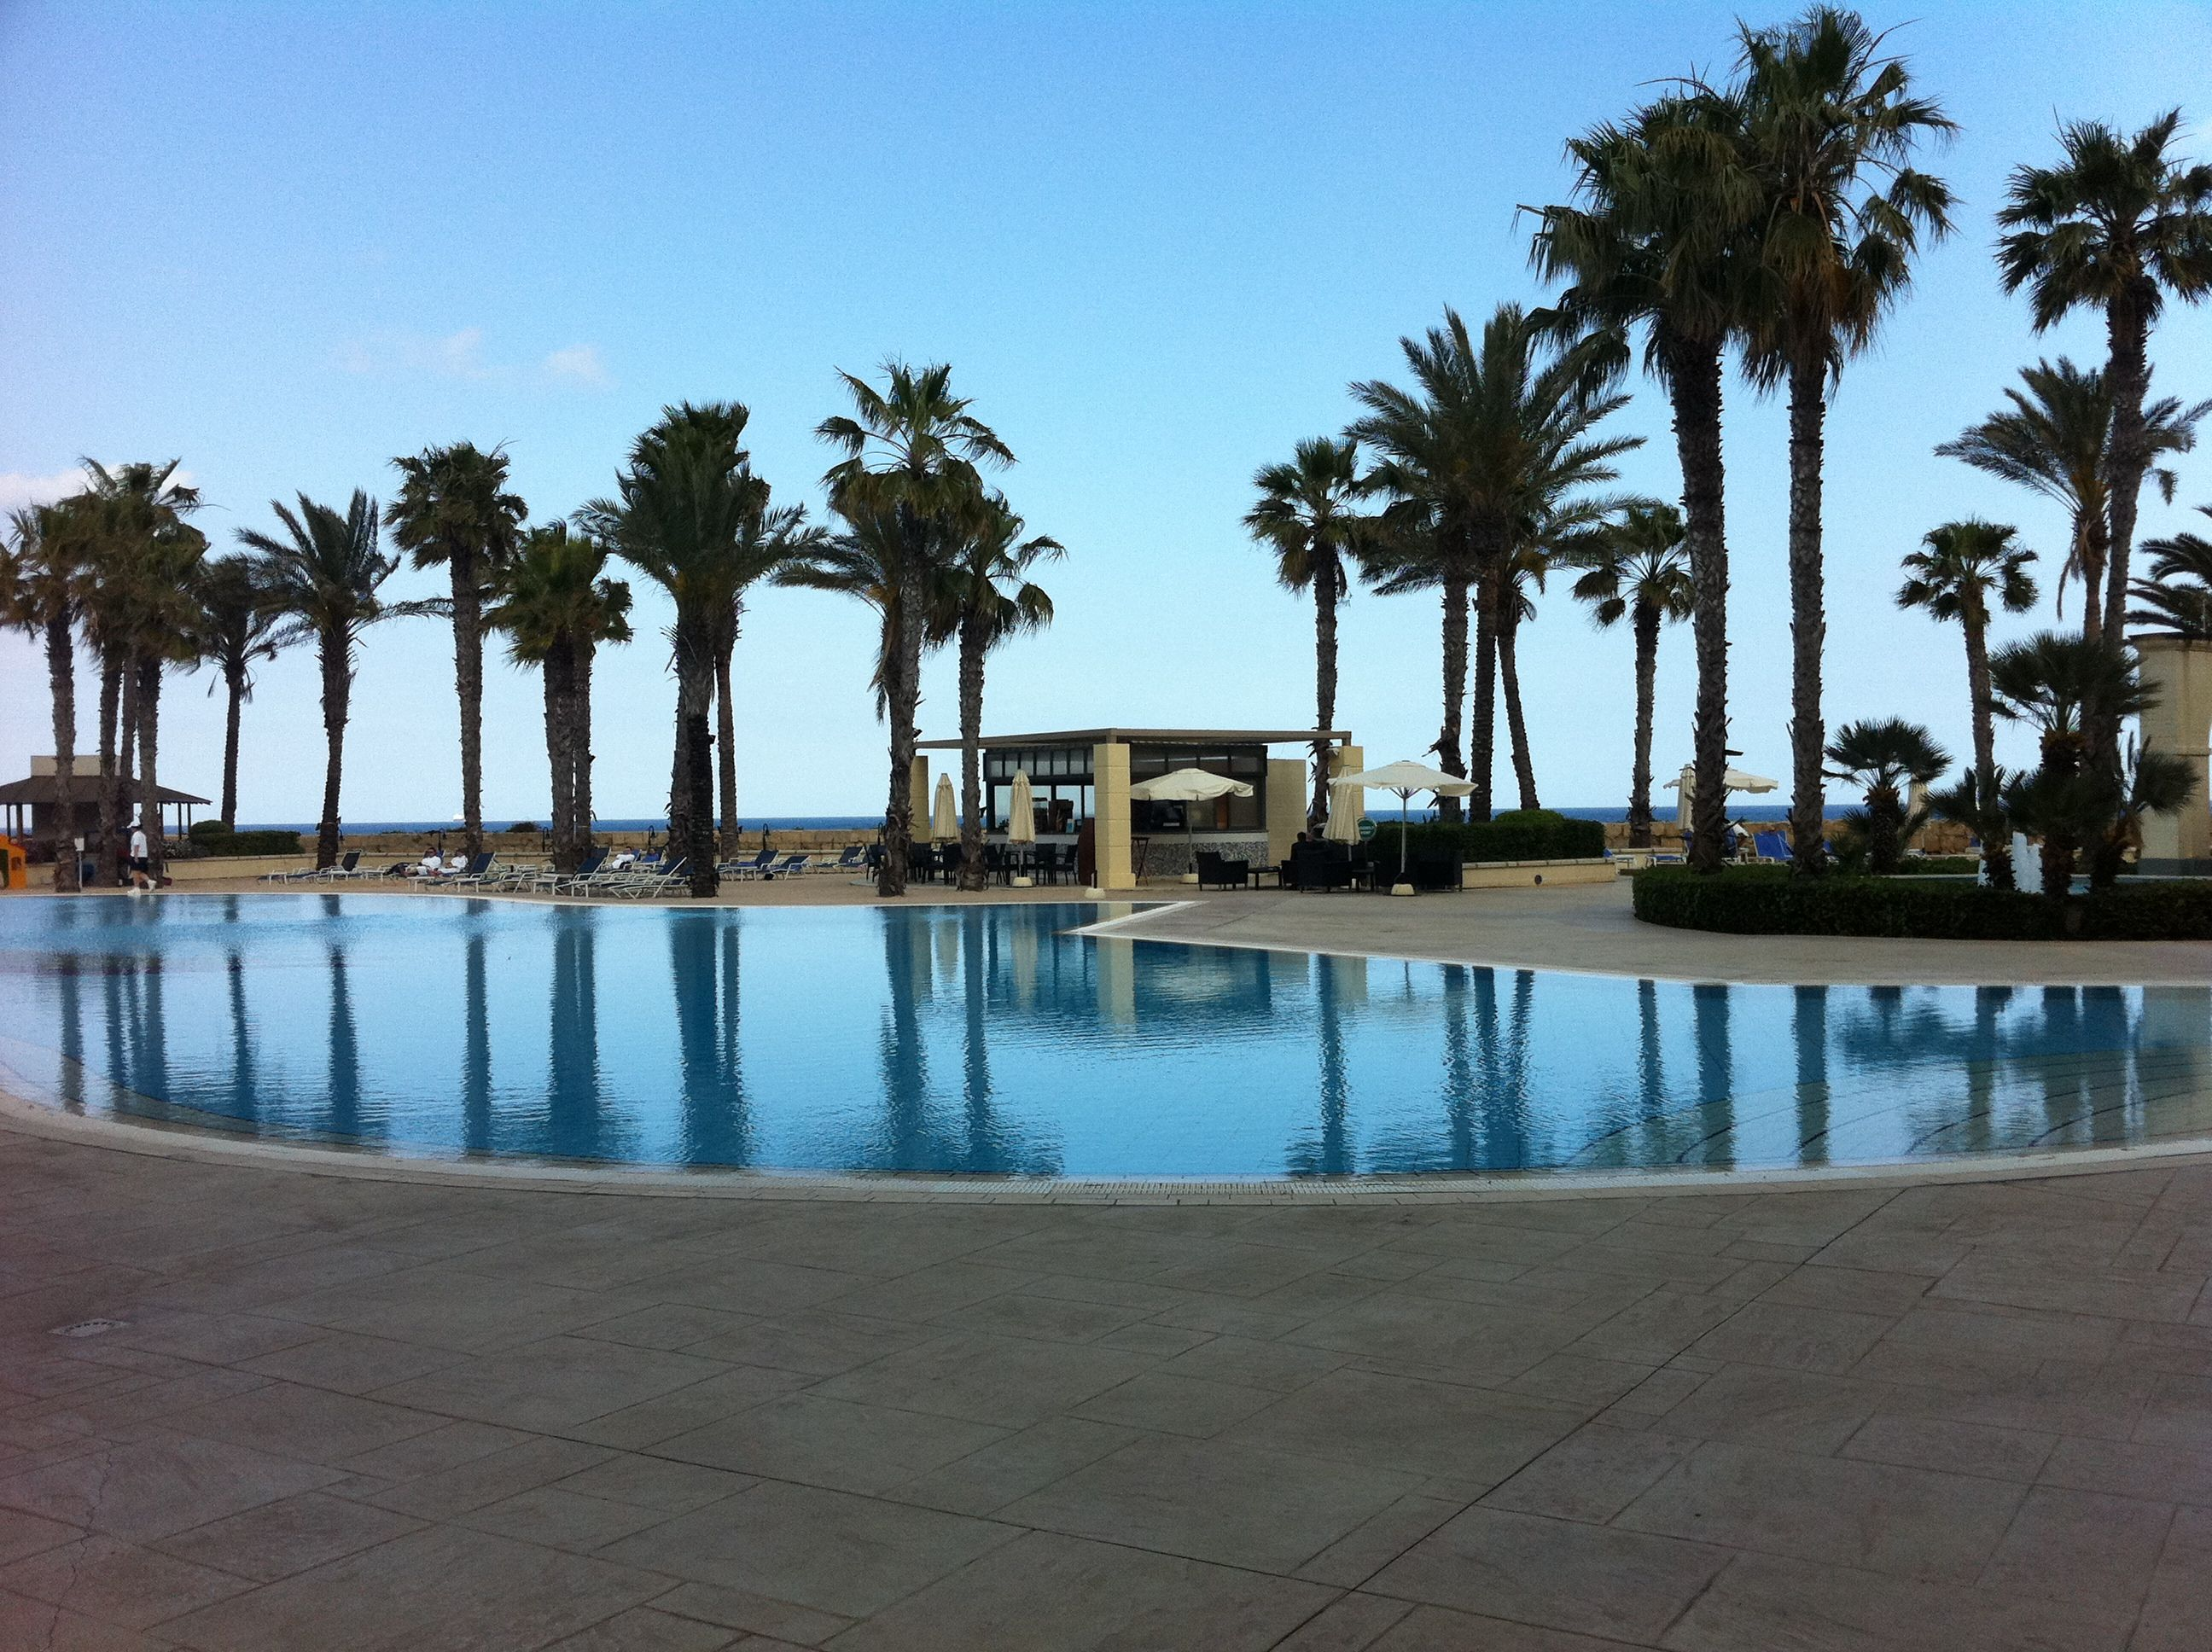 A beautiful view of Malta, the location of the 2011 World Gambling Briefing